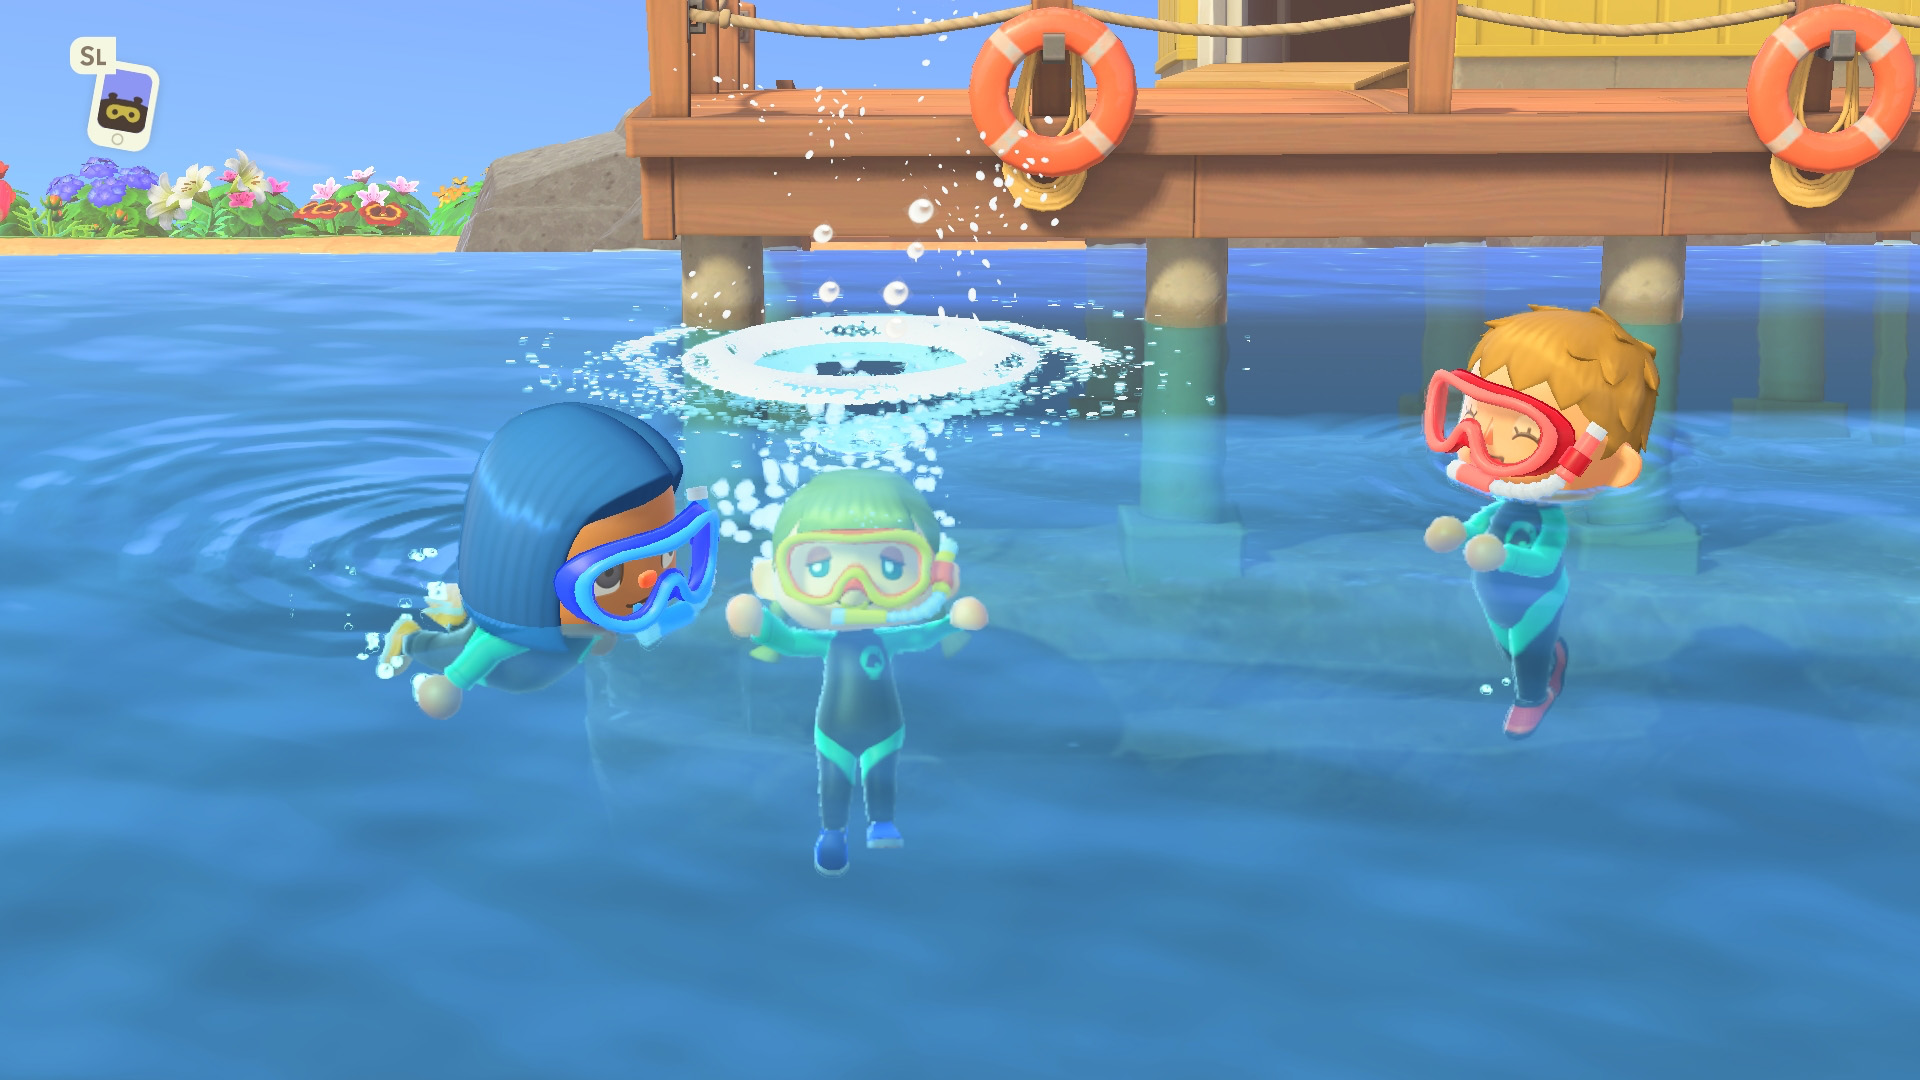 How to get pirate clothing and decor - animal crossing: new horizons